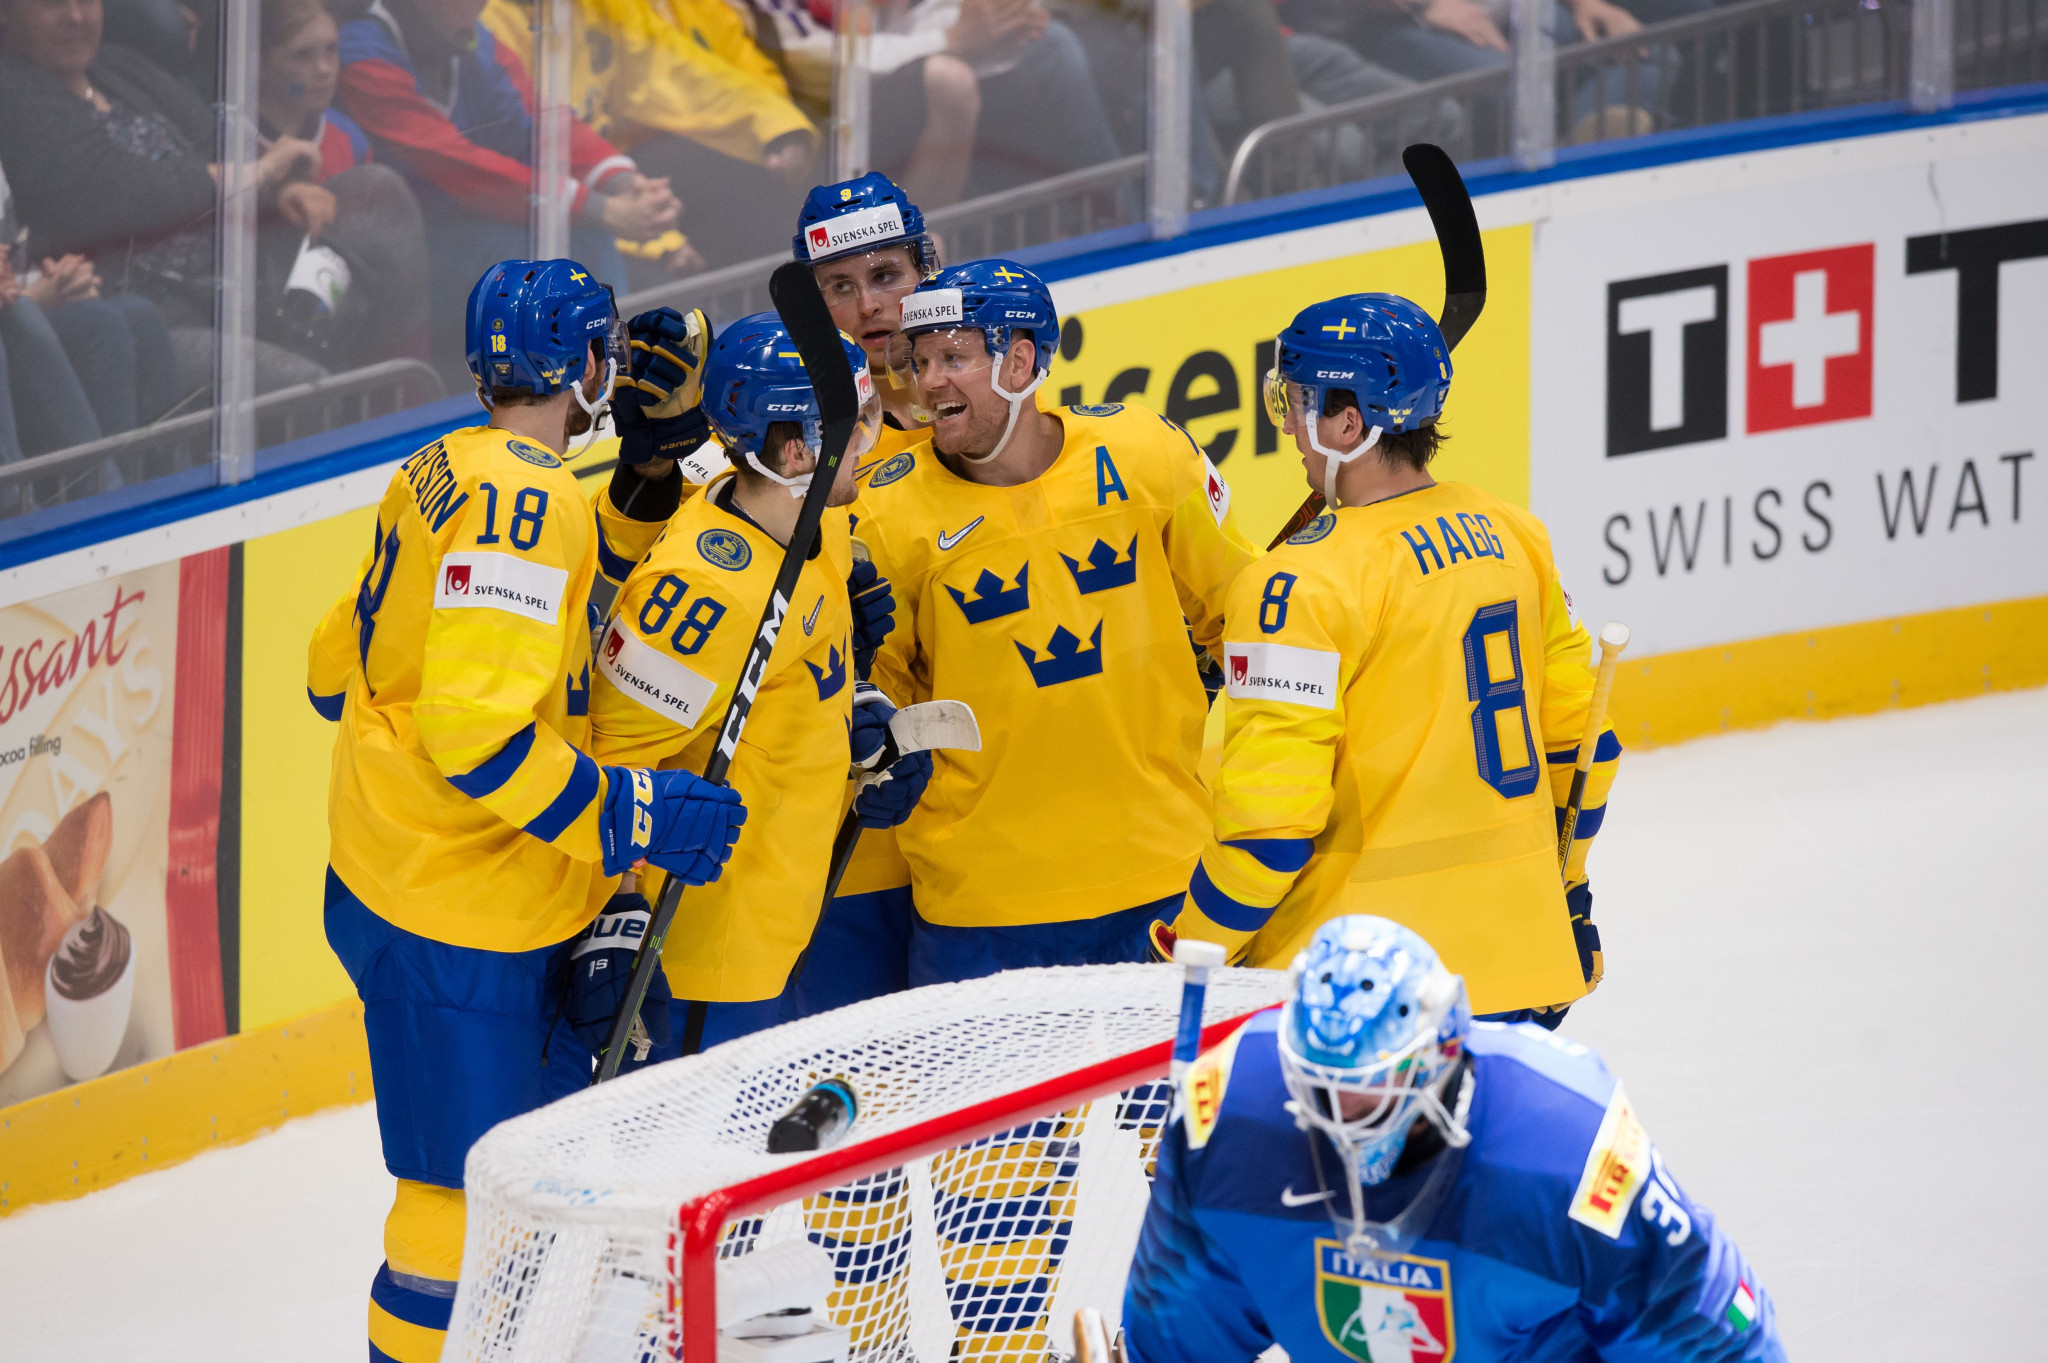 Sweden celebrated an impressive 8-0 win over Italy ©Getty Images